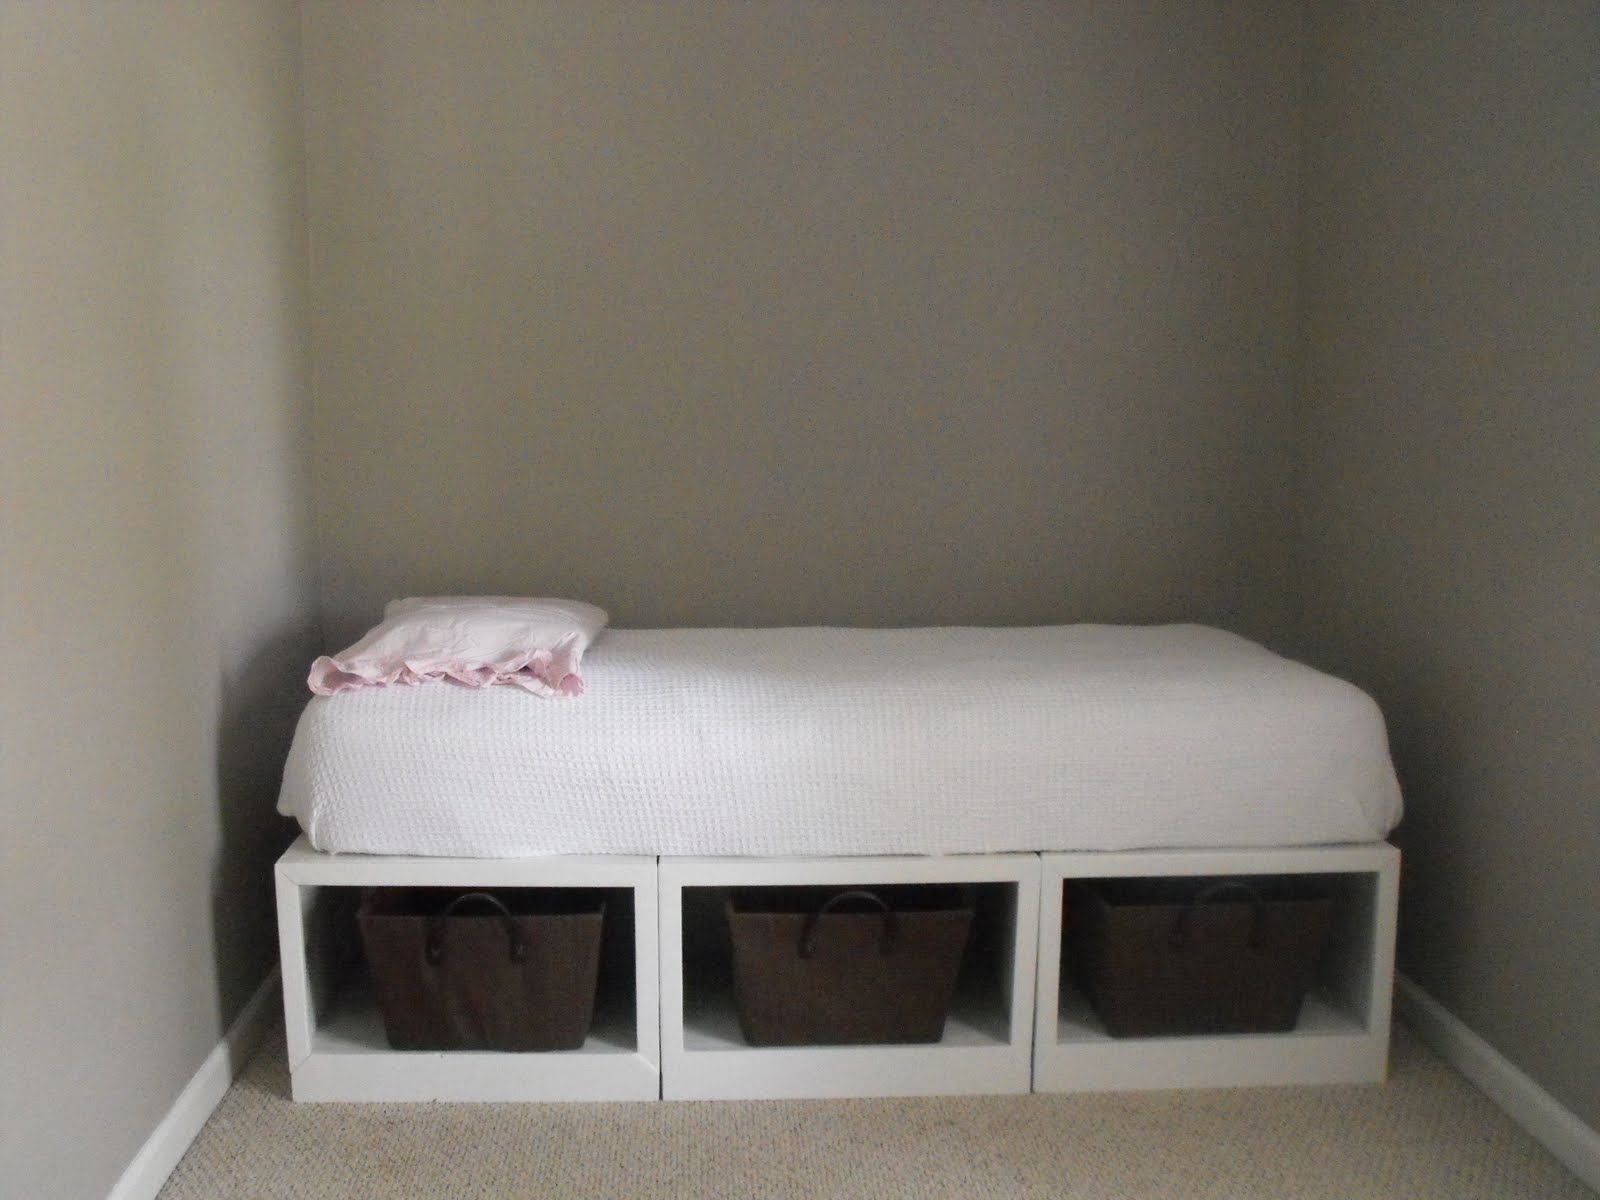 Diy Platform Beds With Storage Below | www.woodworking.bofusfocus.com